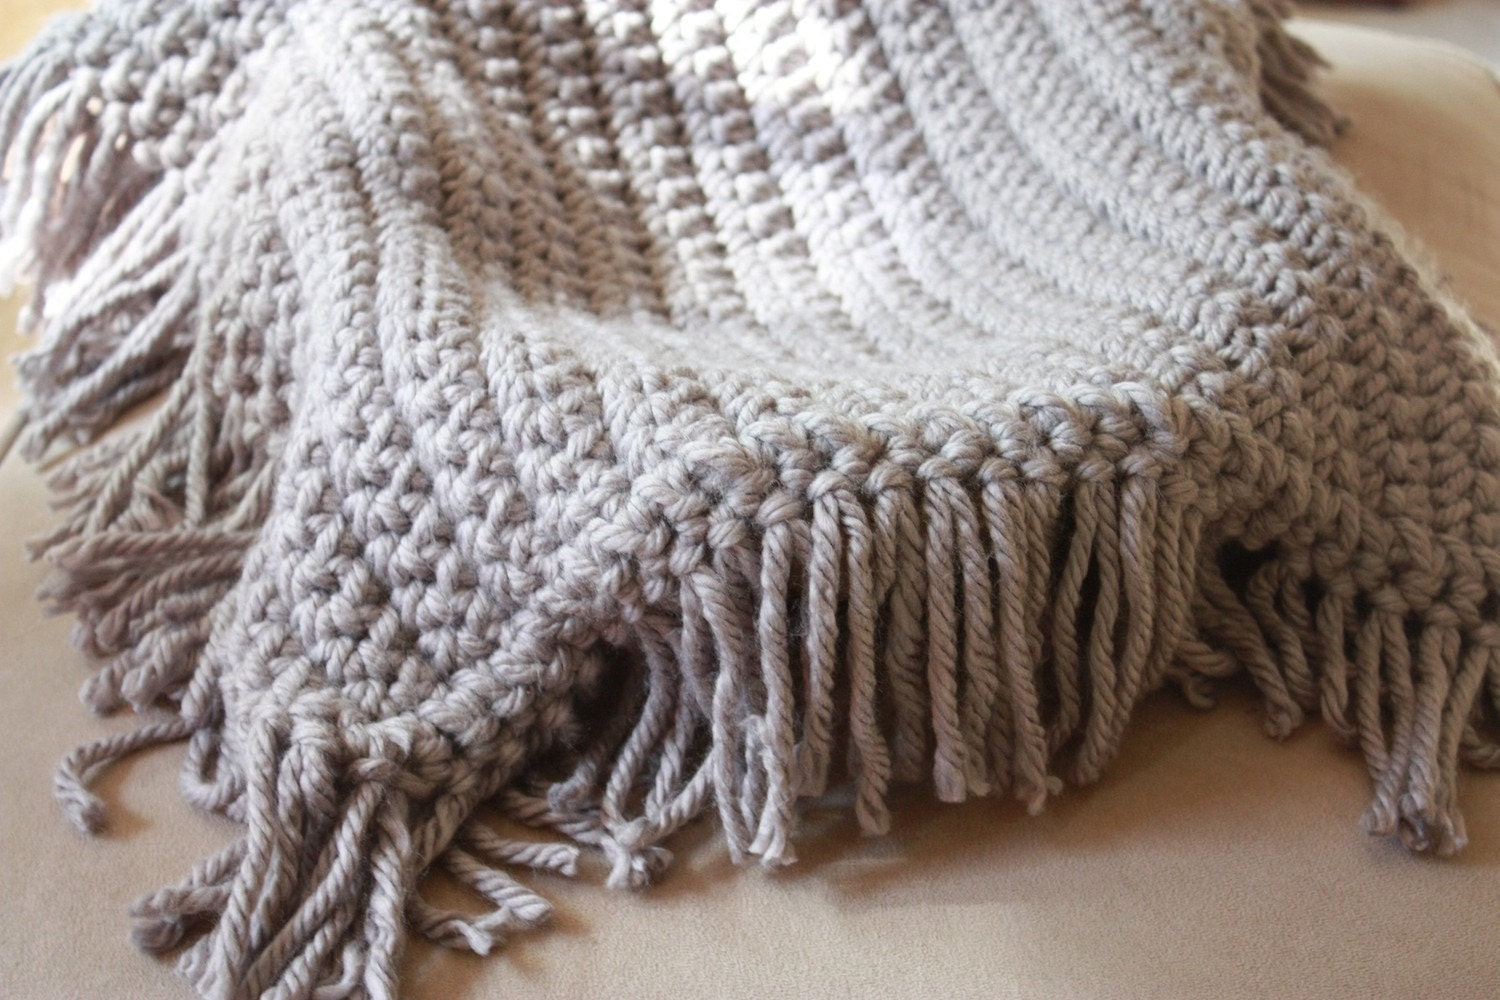 Gray Blanket with Fringe - Great Photo Prop